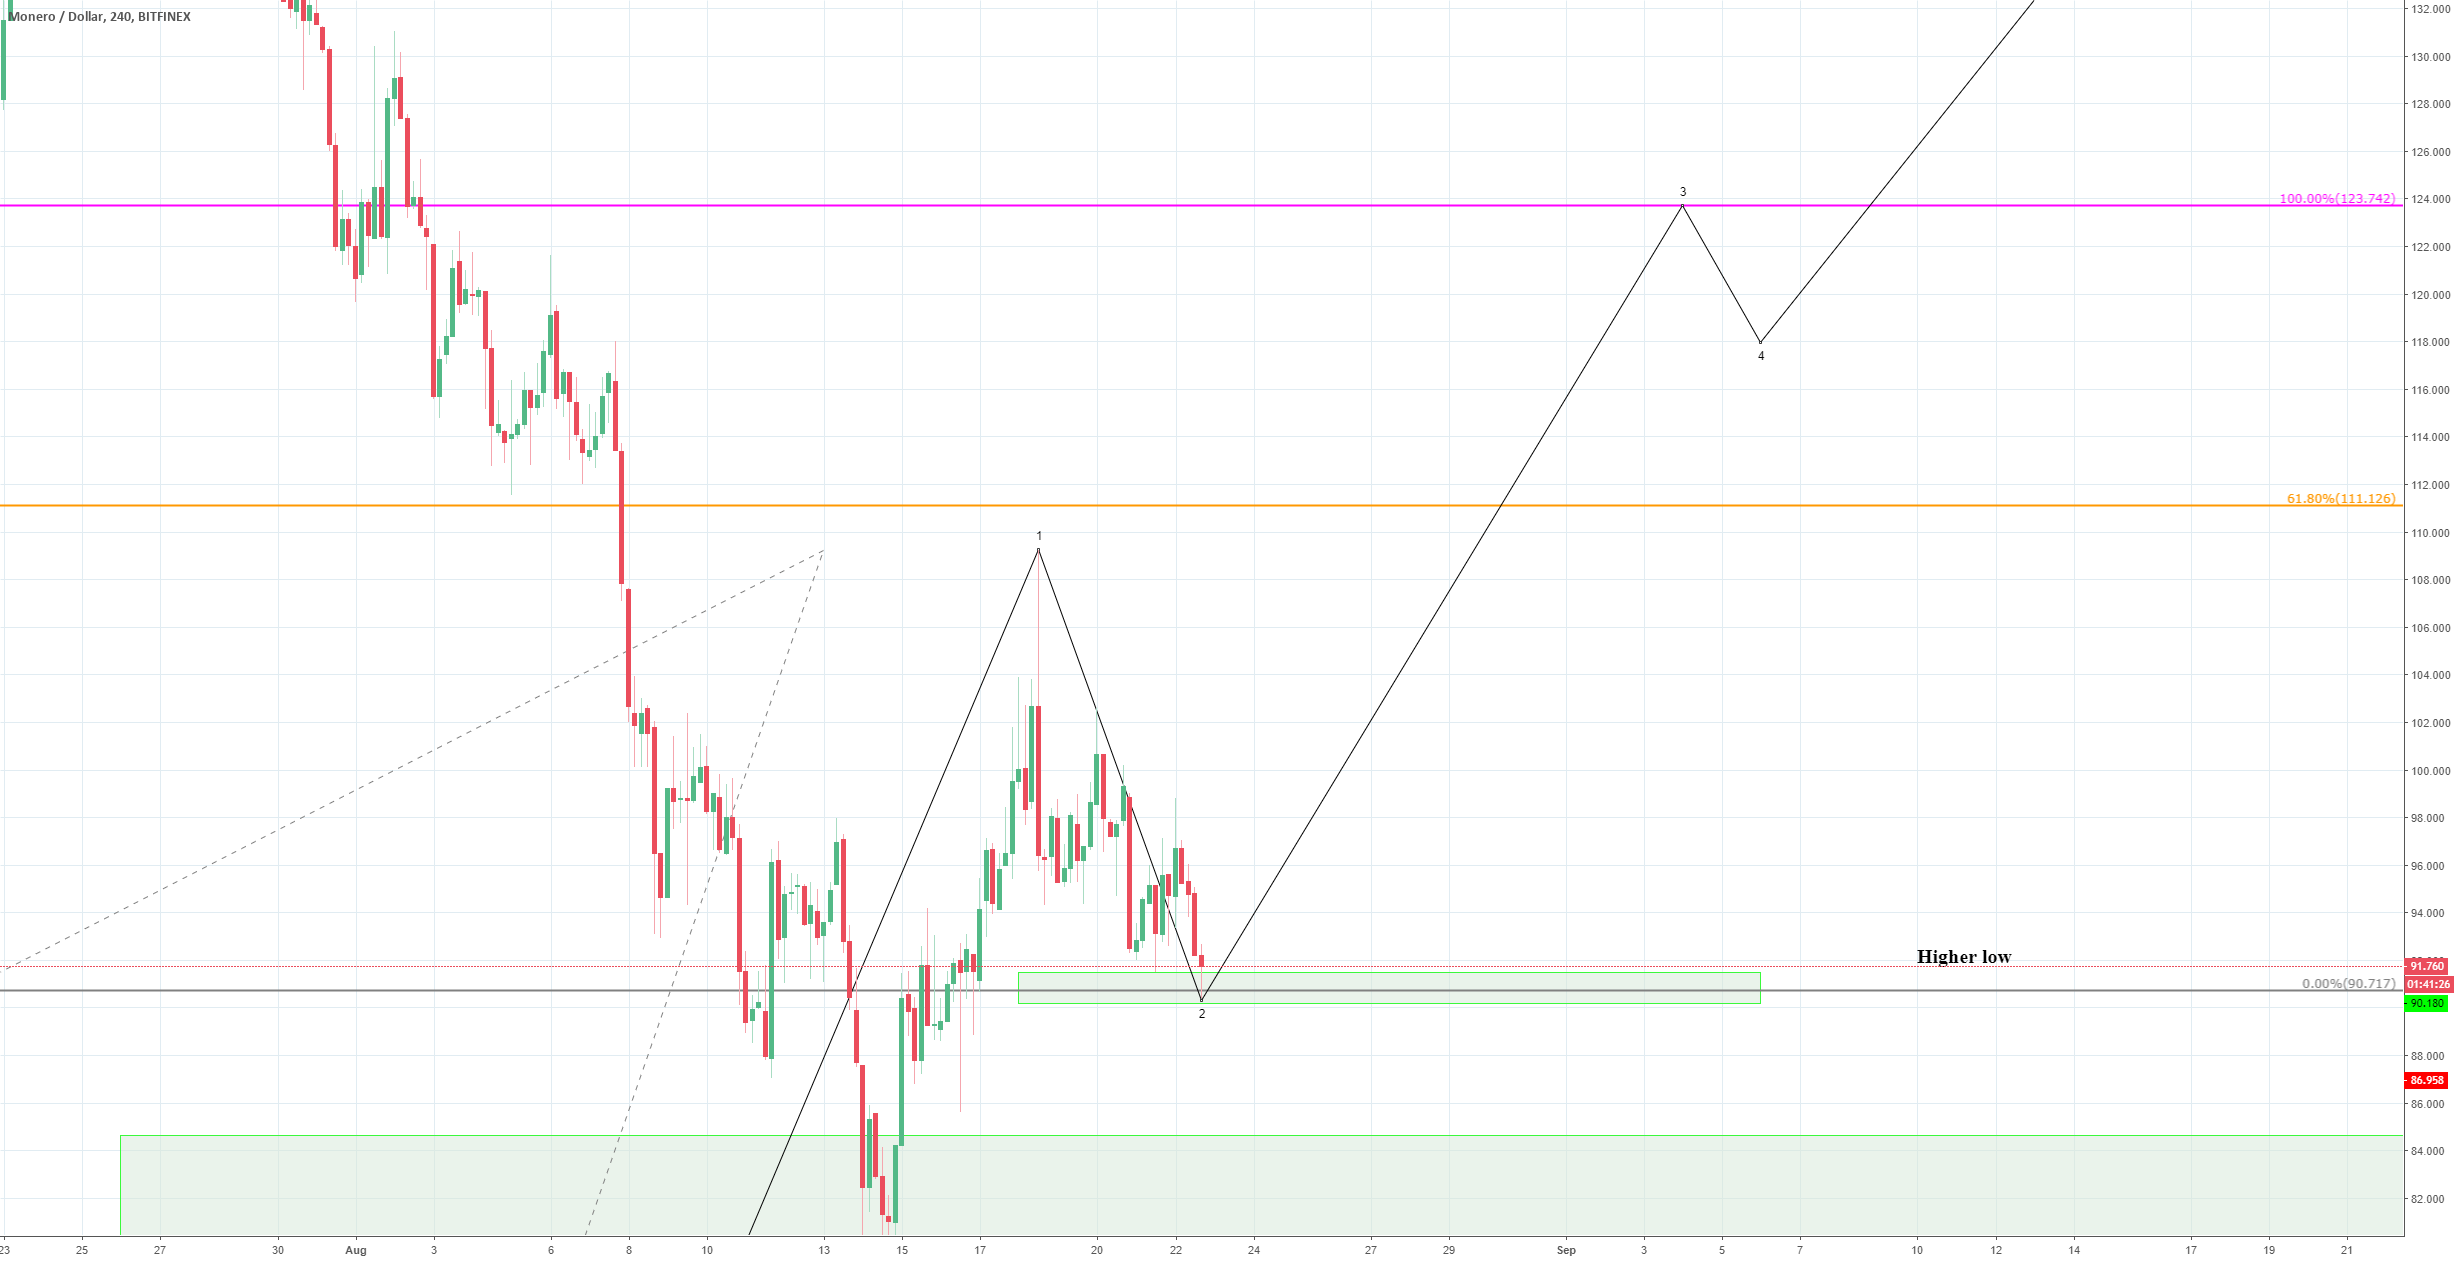 XMR USD bounce on higher low, best entry ever